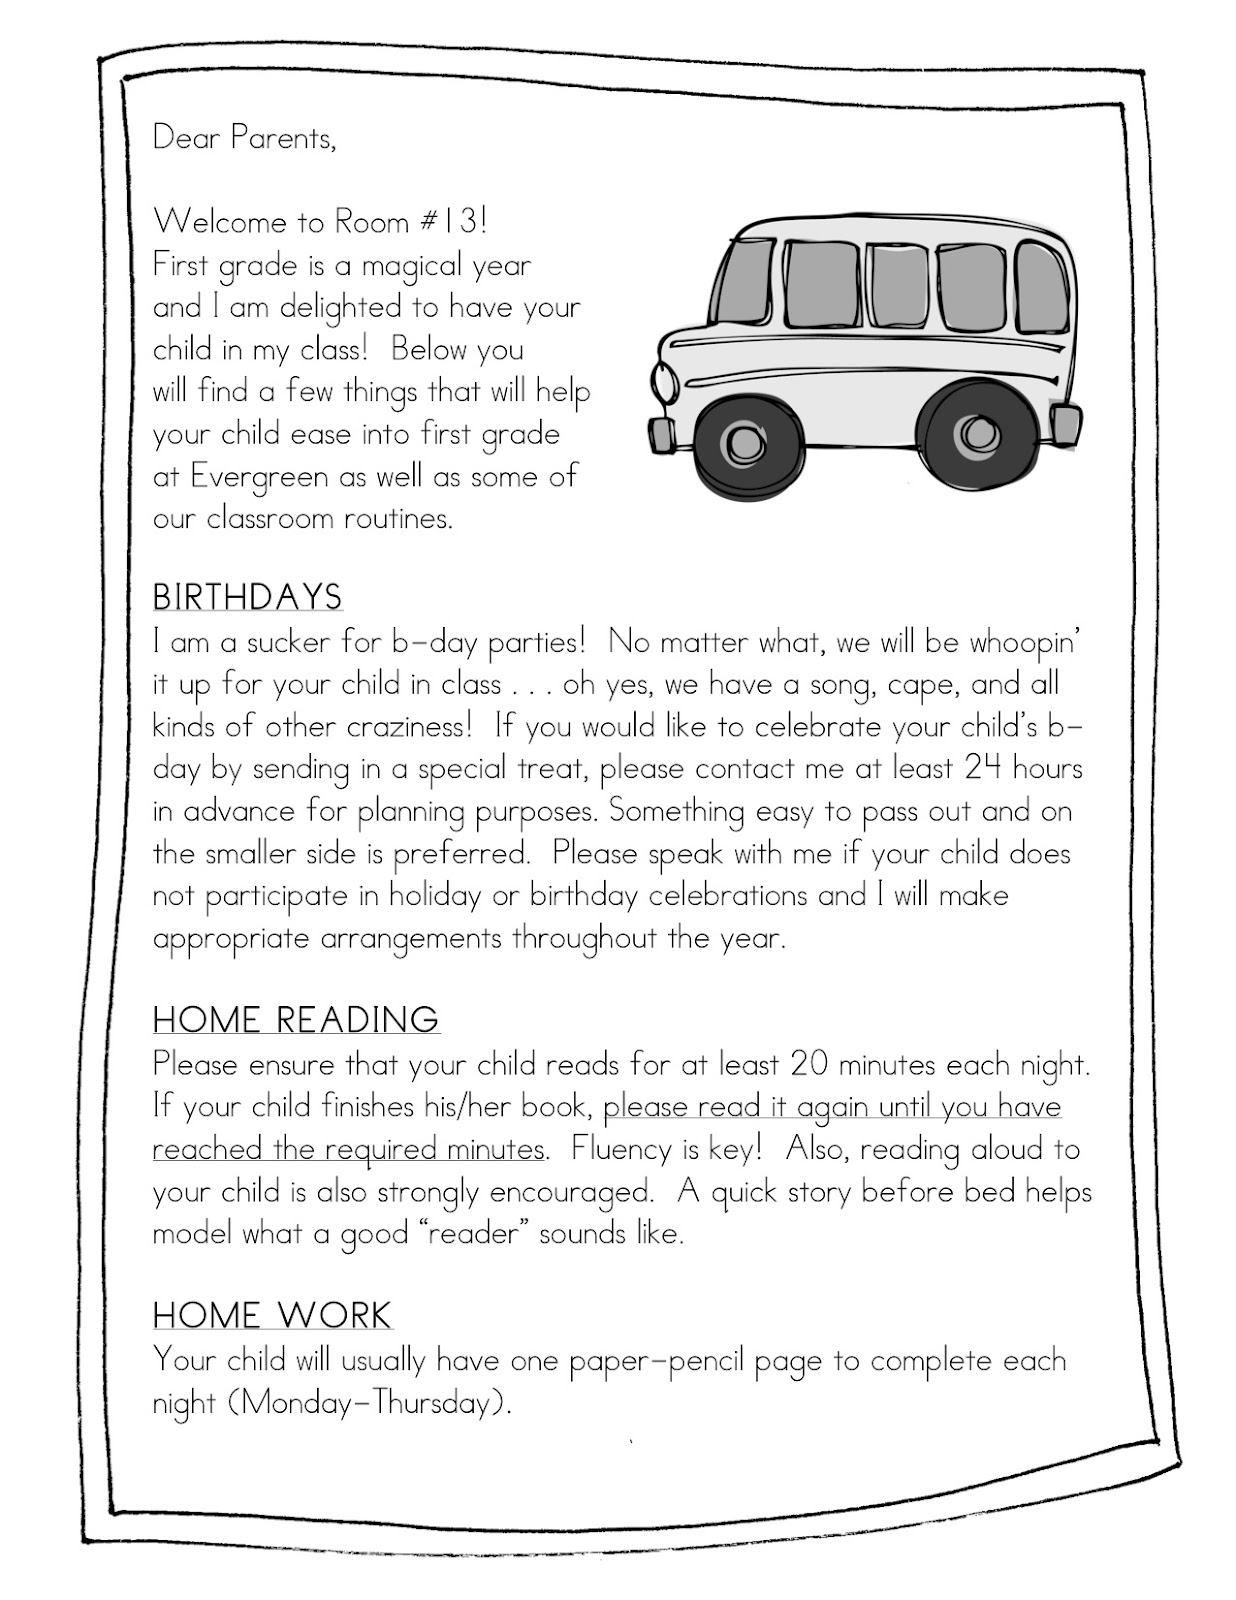 Form frenzy pen pal freebie teacher idea factory handbook home to help parents prep for the transition to first grade this puppy outlines some of my expectations and provides them a little insight on thecheapjerseys Choice Image